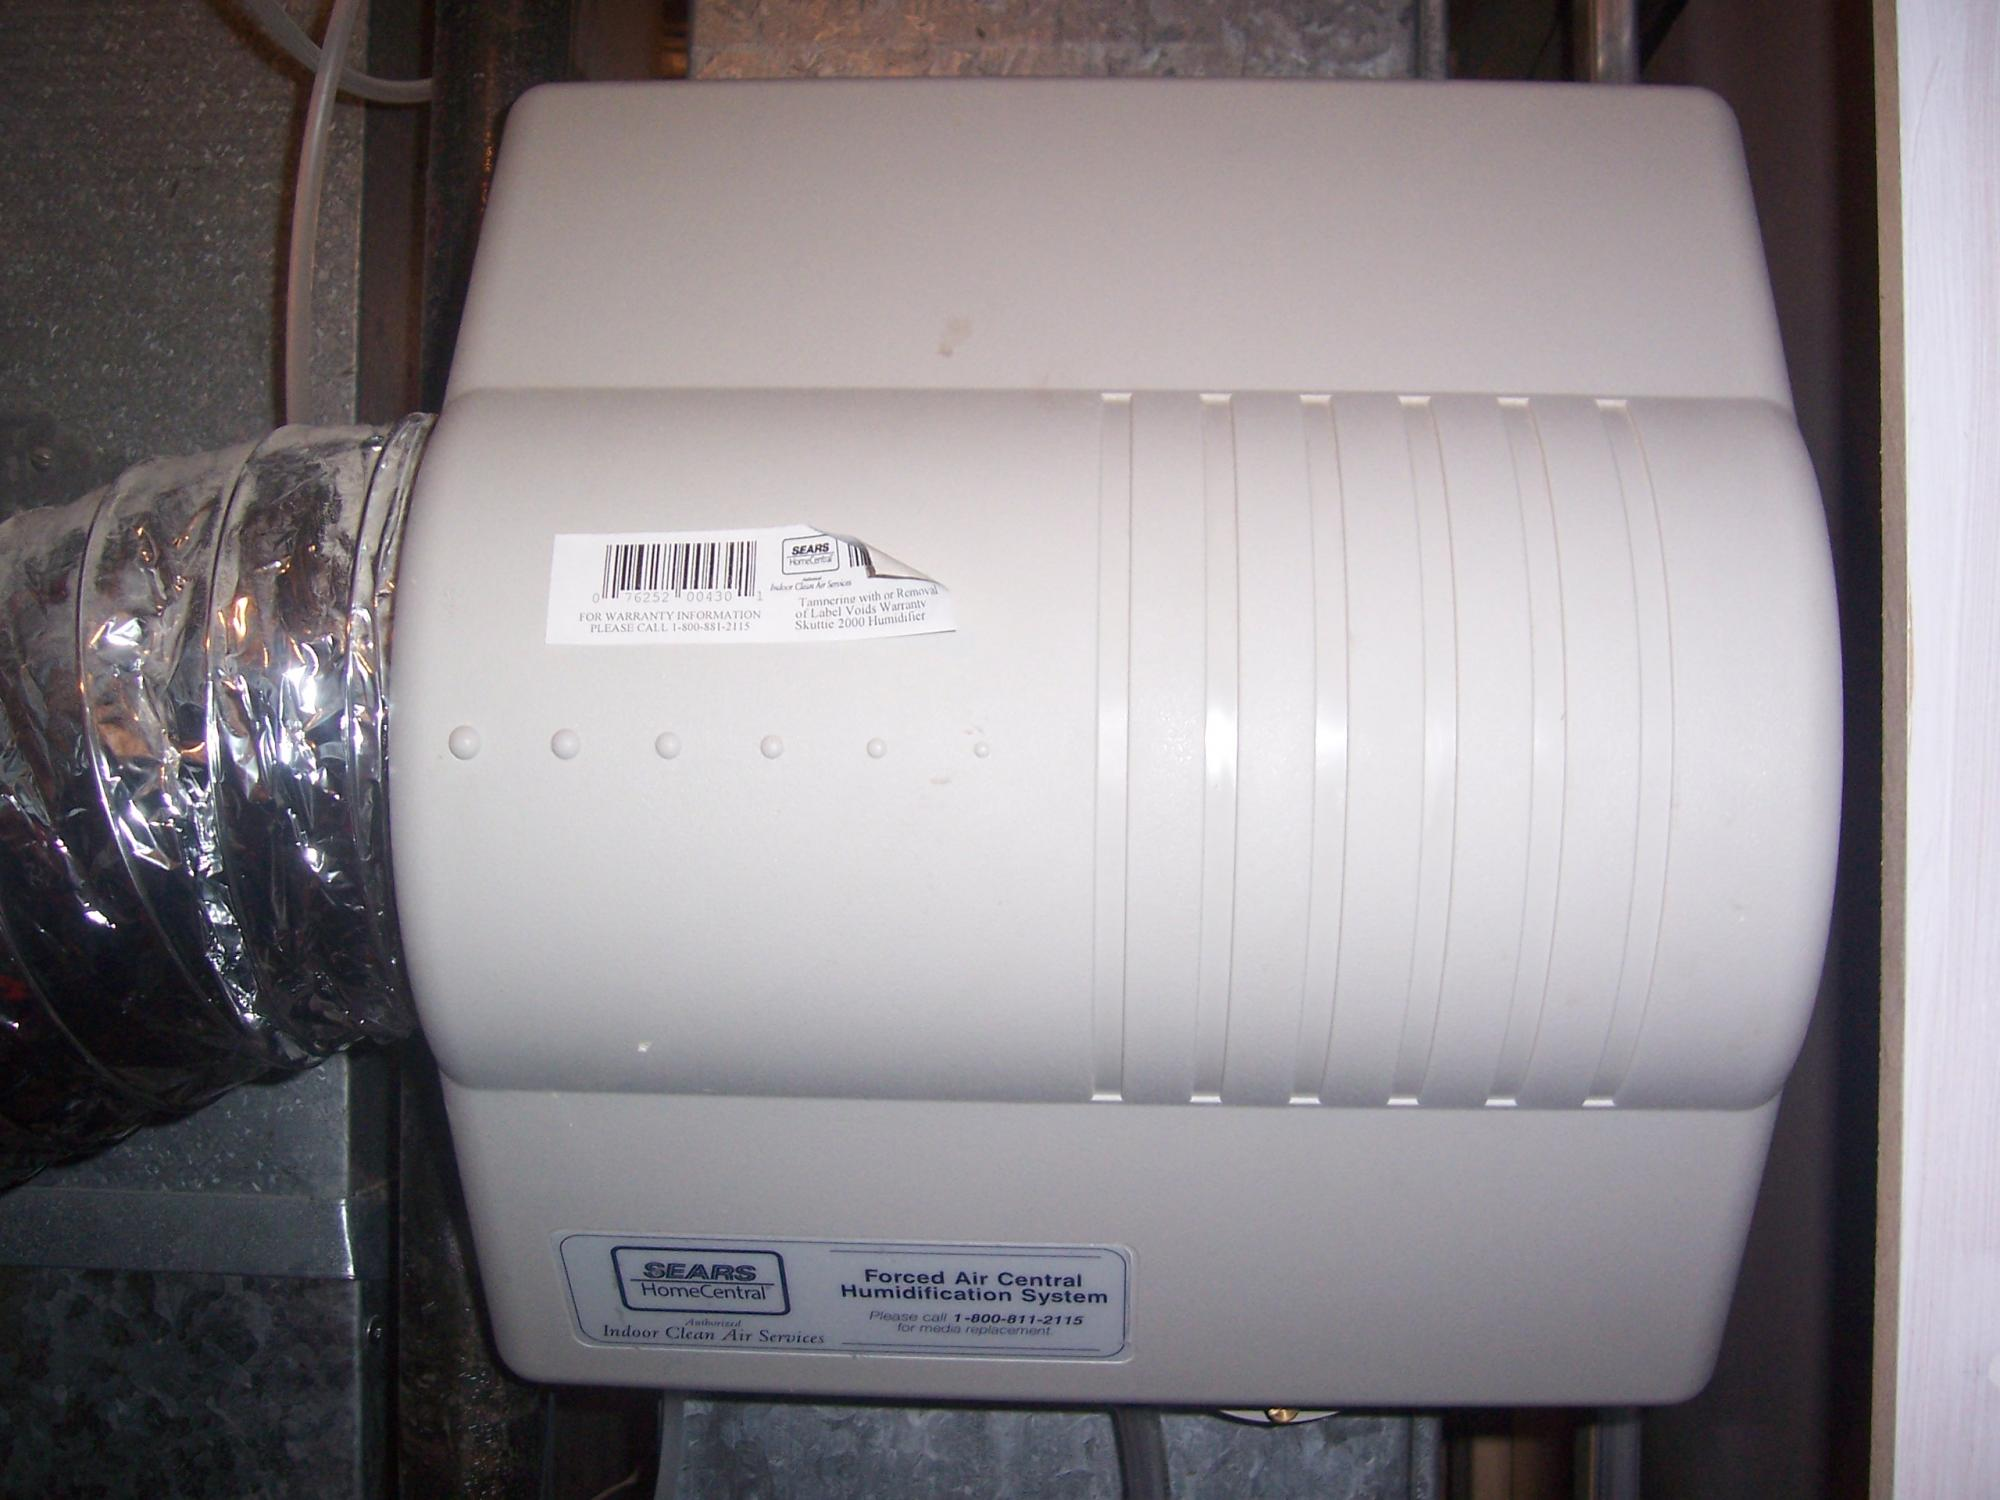 Repair Flow Through Humidifier Skuttle 2000 - Router Forums